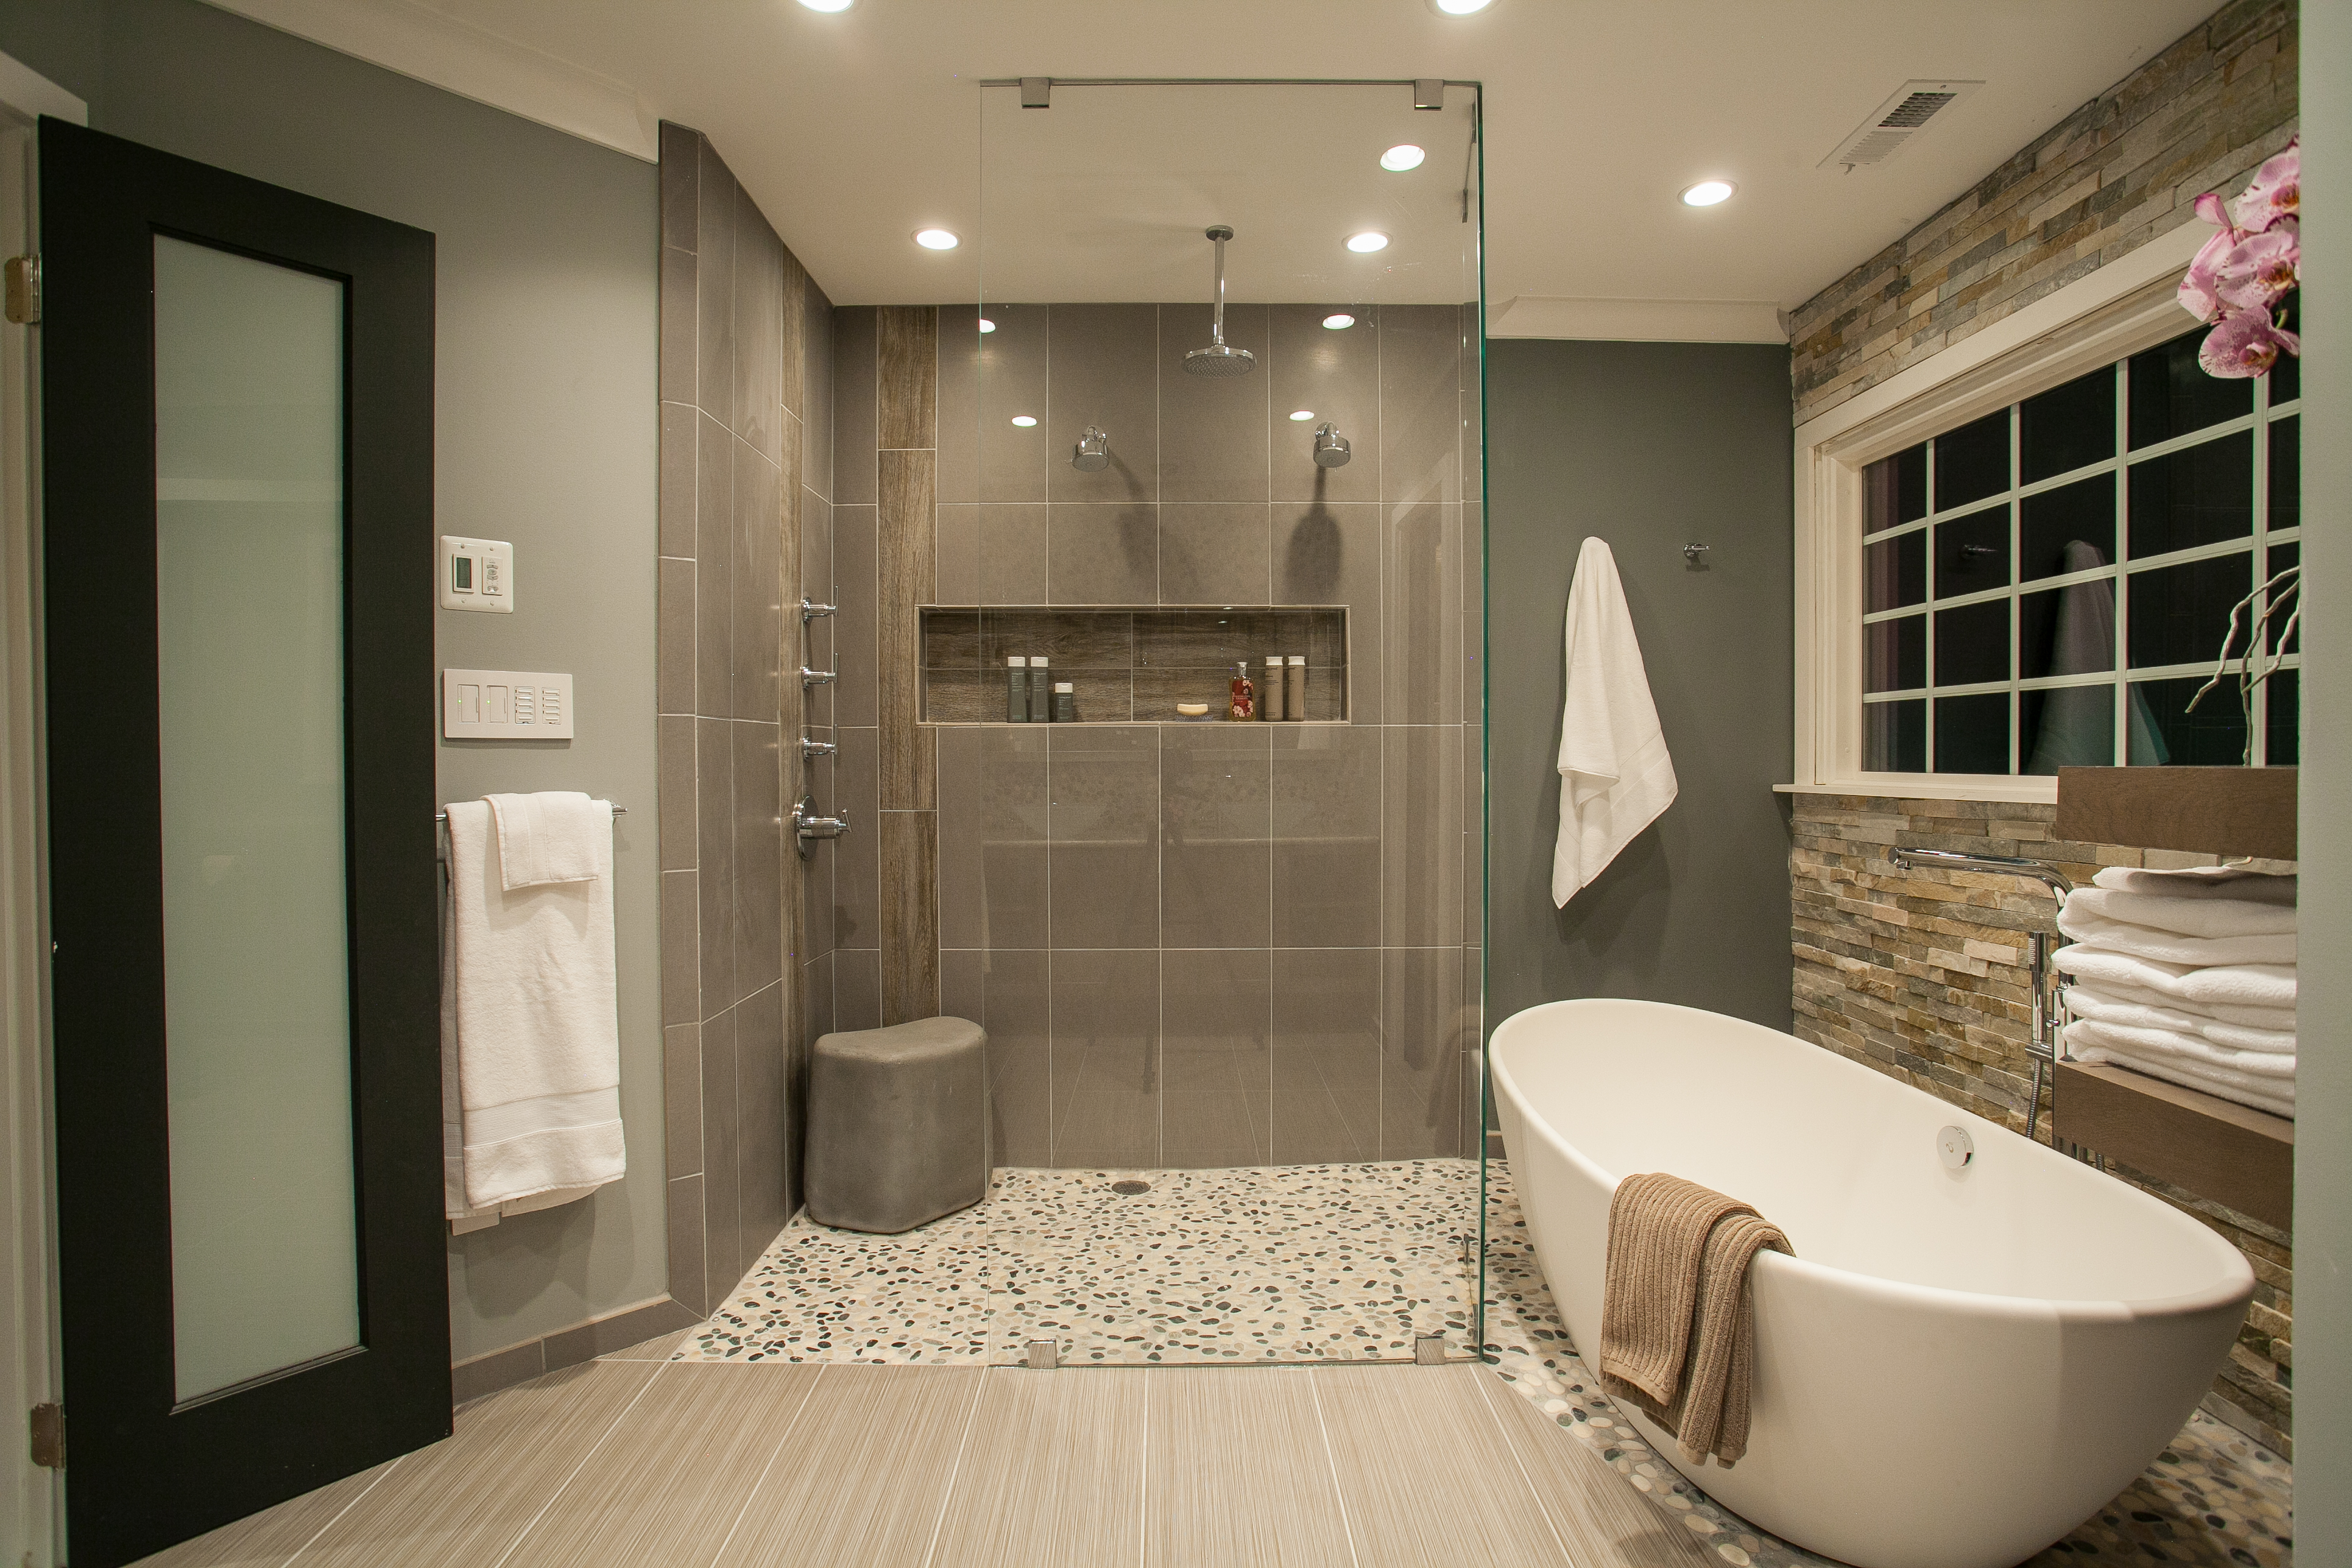 spa bathrooms pictures photo - 2